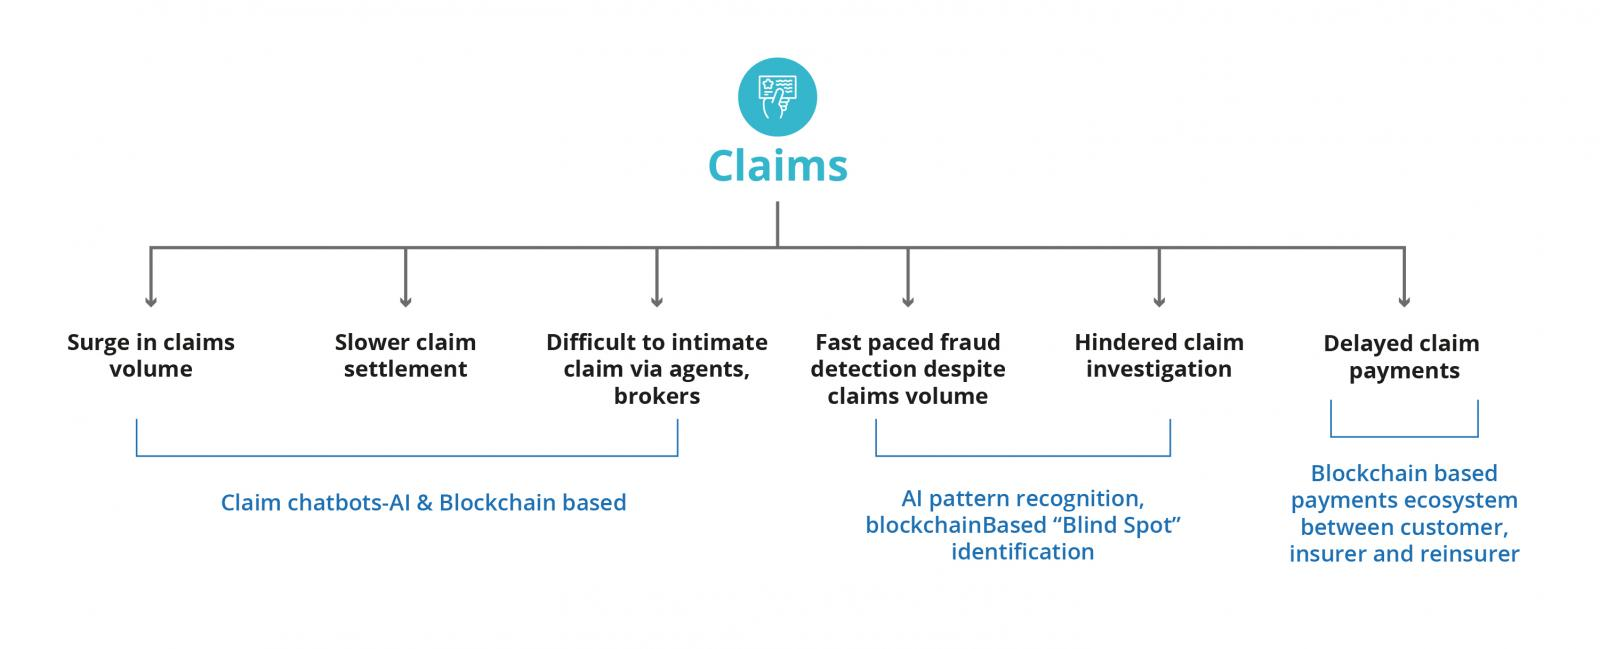 insurance lifecycle mapped to claims